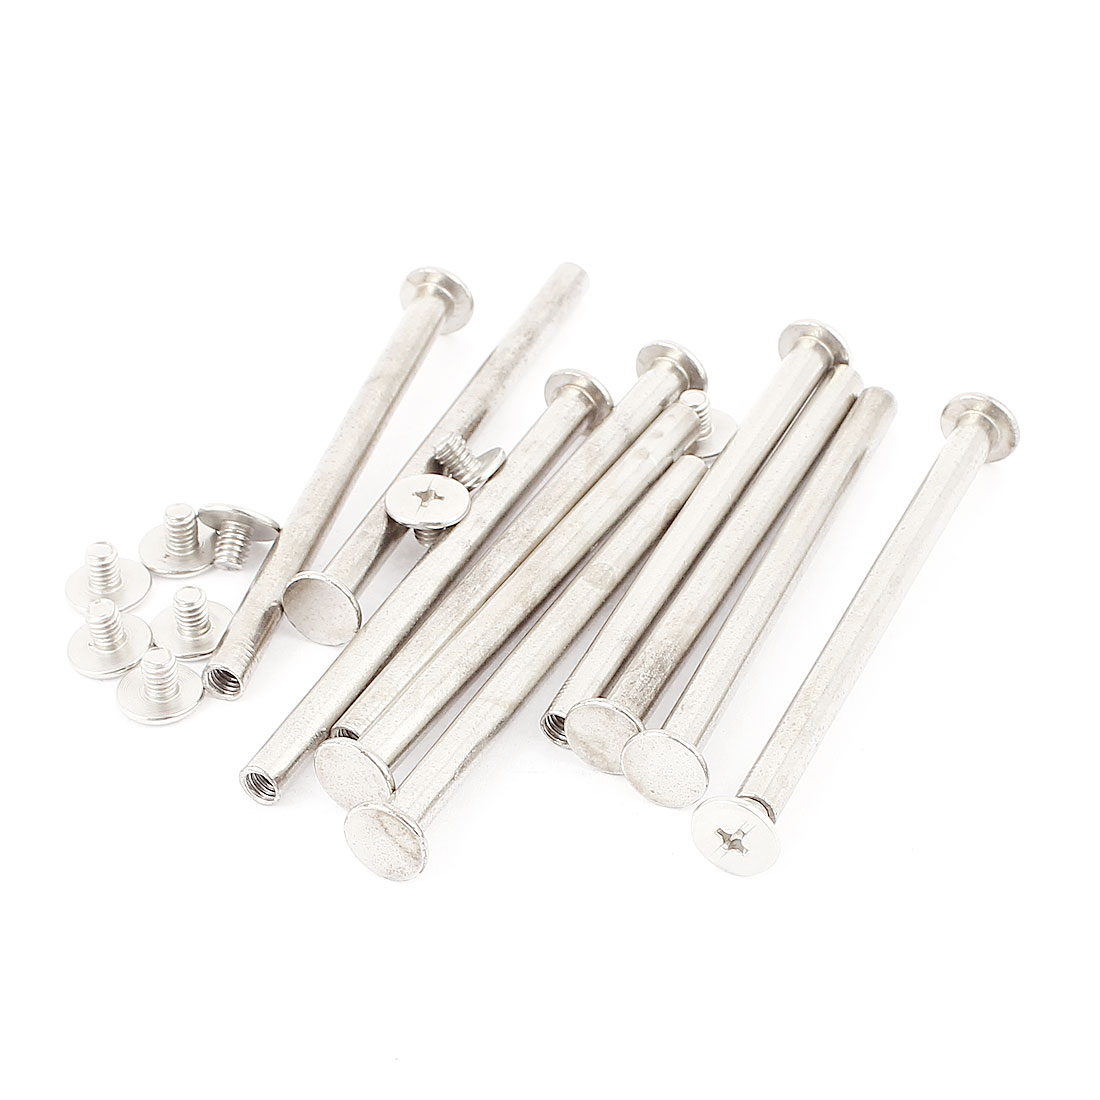 10Pcs M5x70mm Nickel Plated Binding Screw Post for Scrapbook Photo Albums